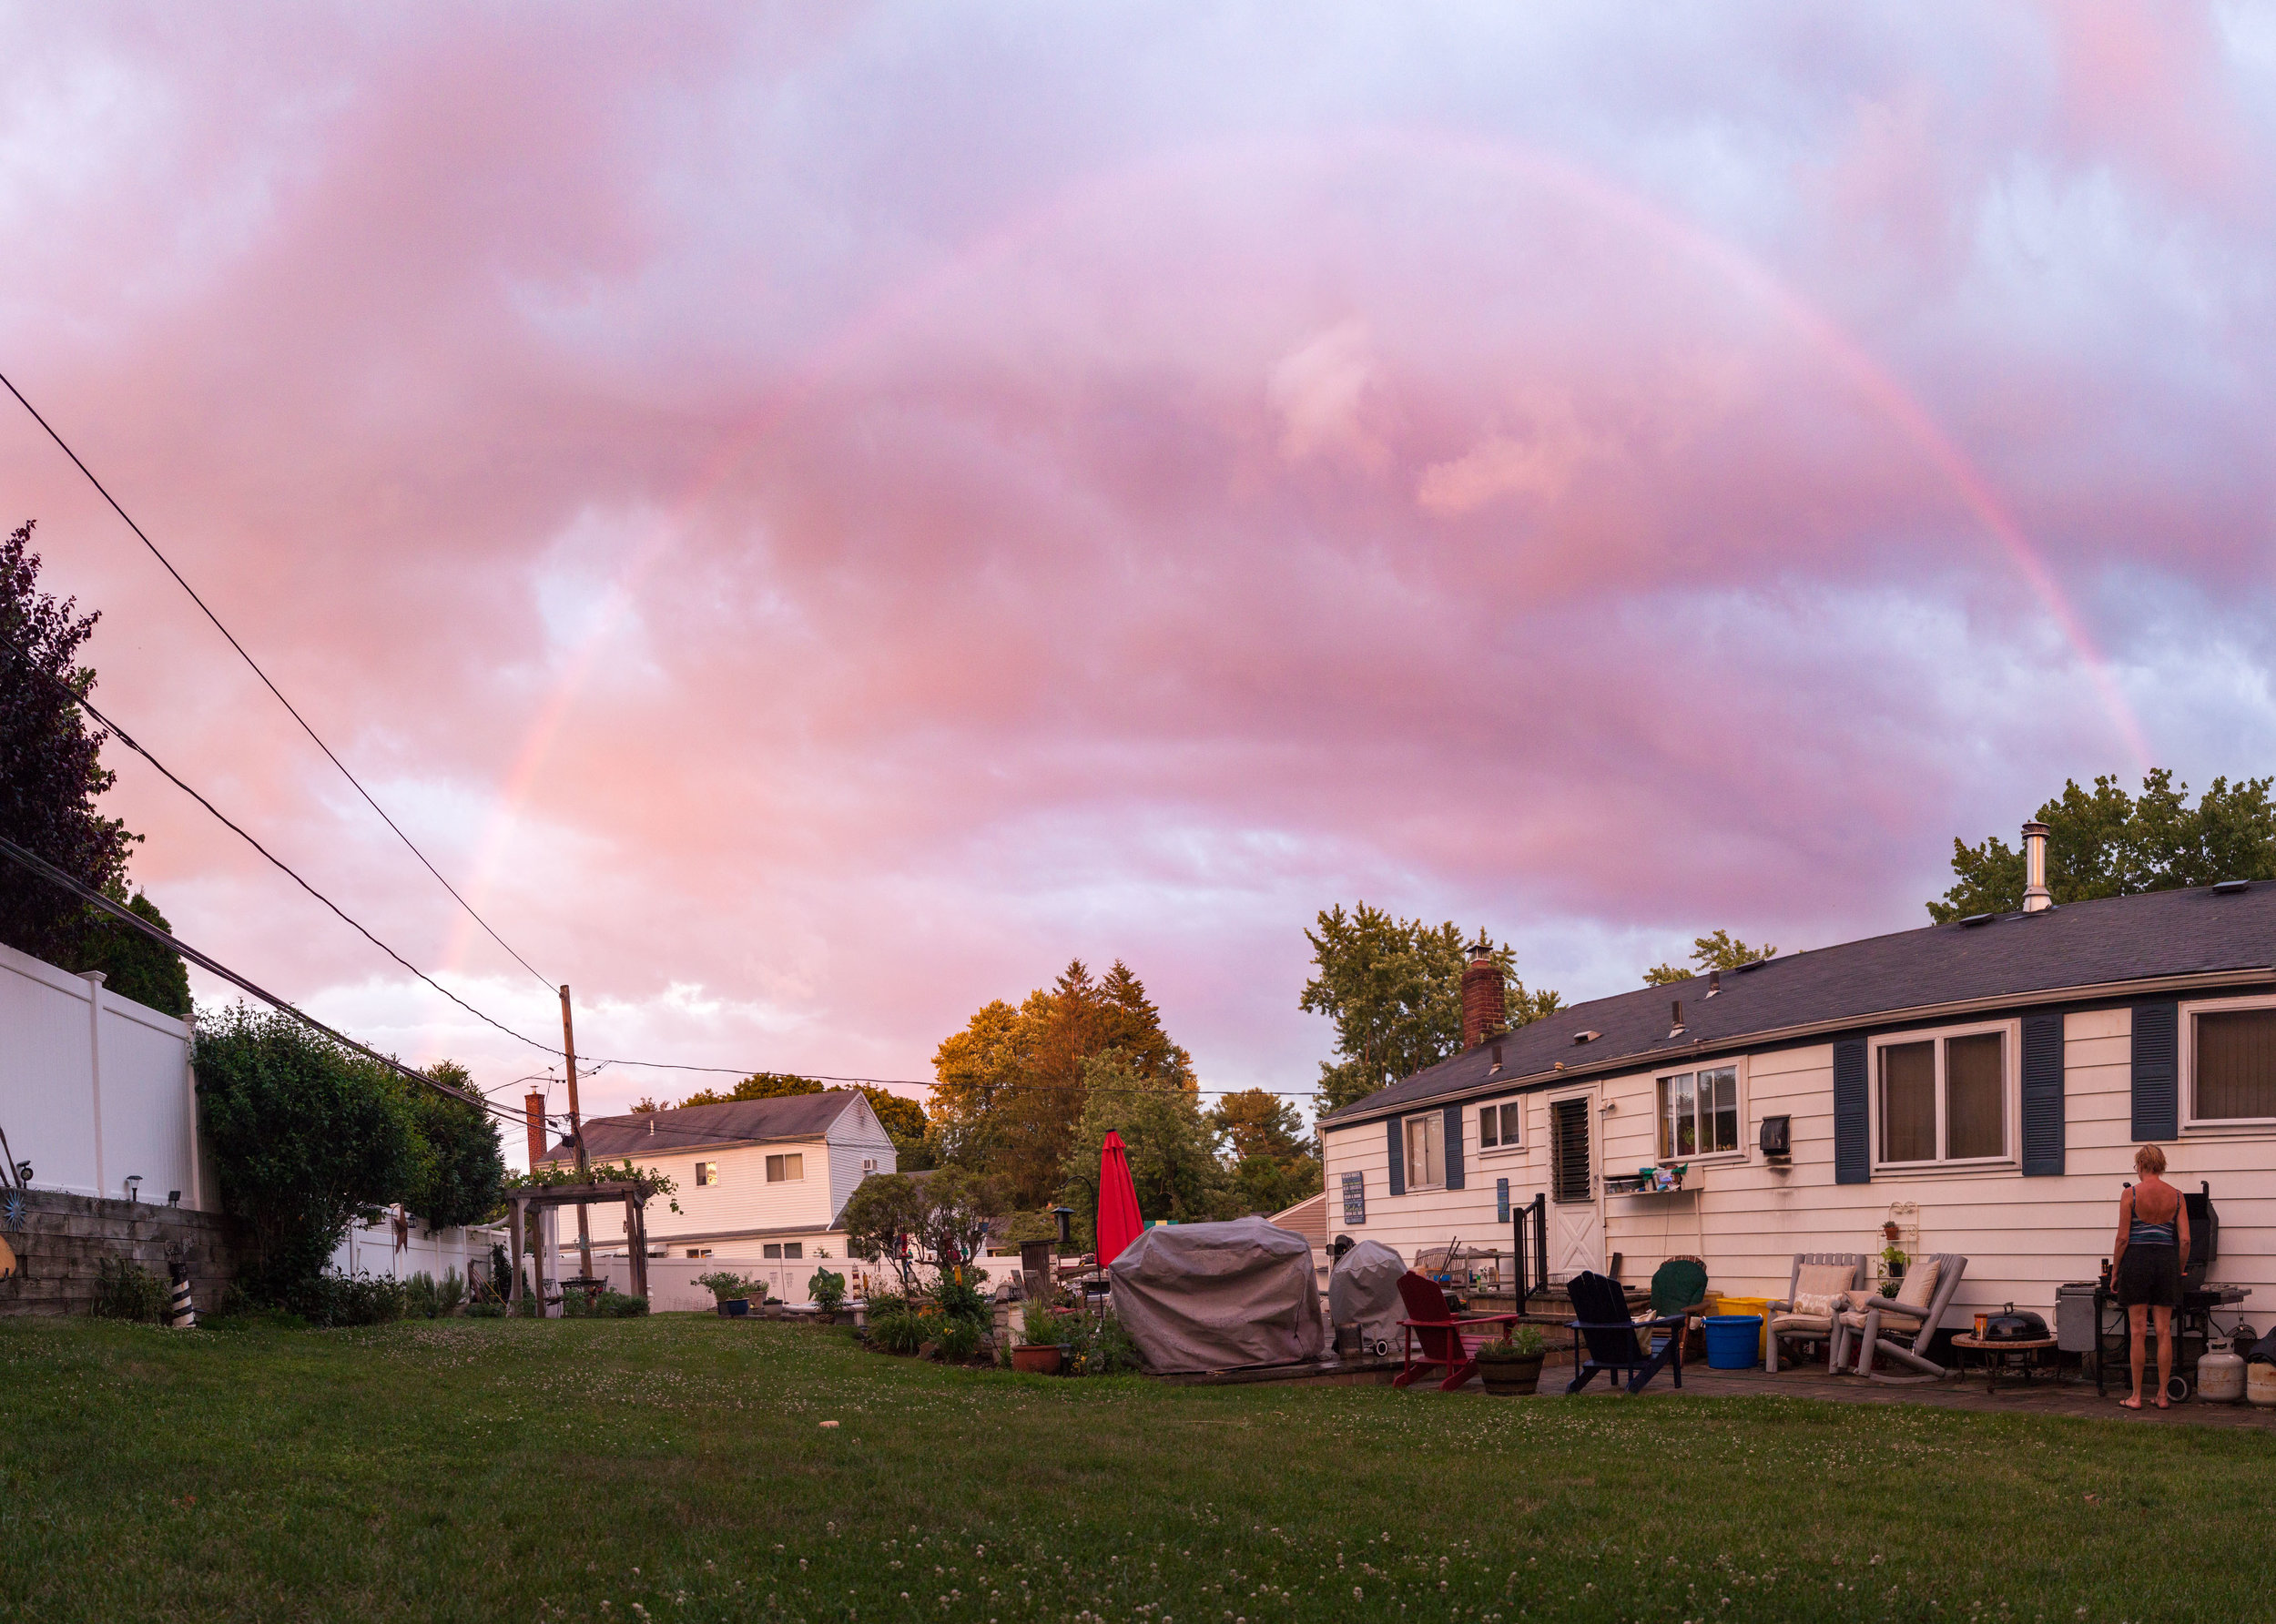 Look at this rainbow over my backyard!